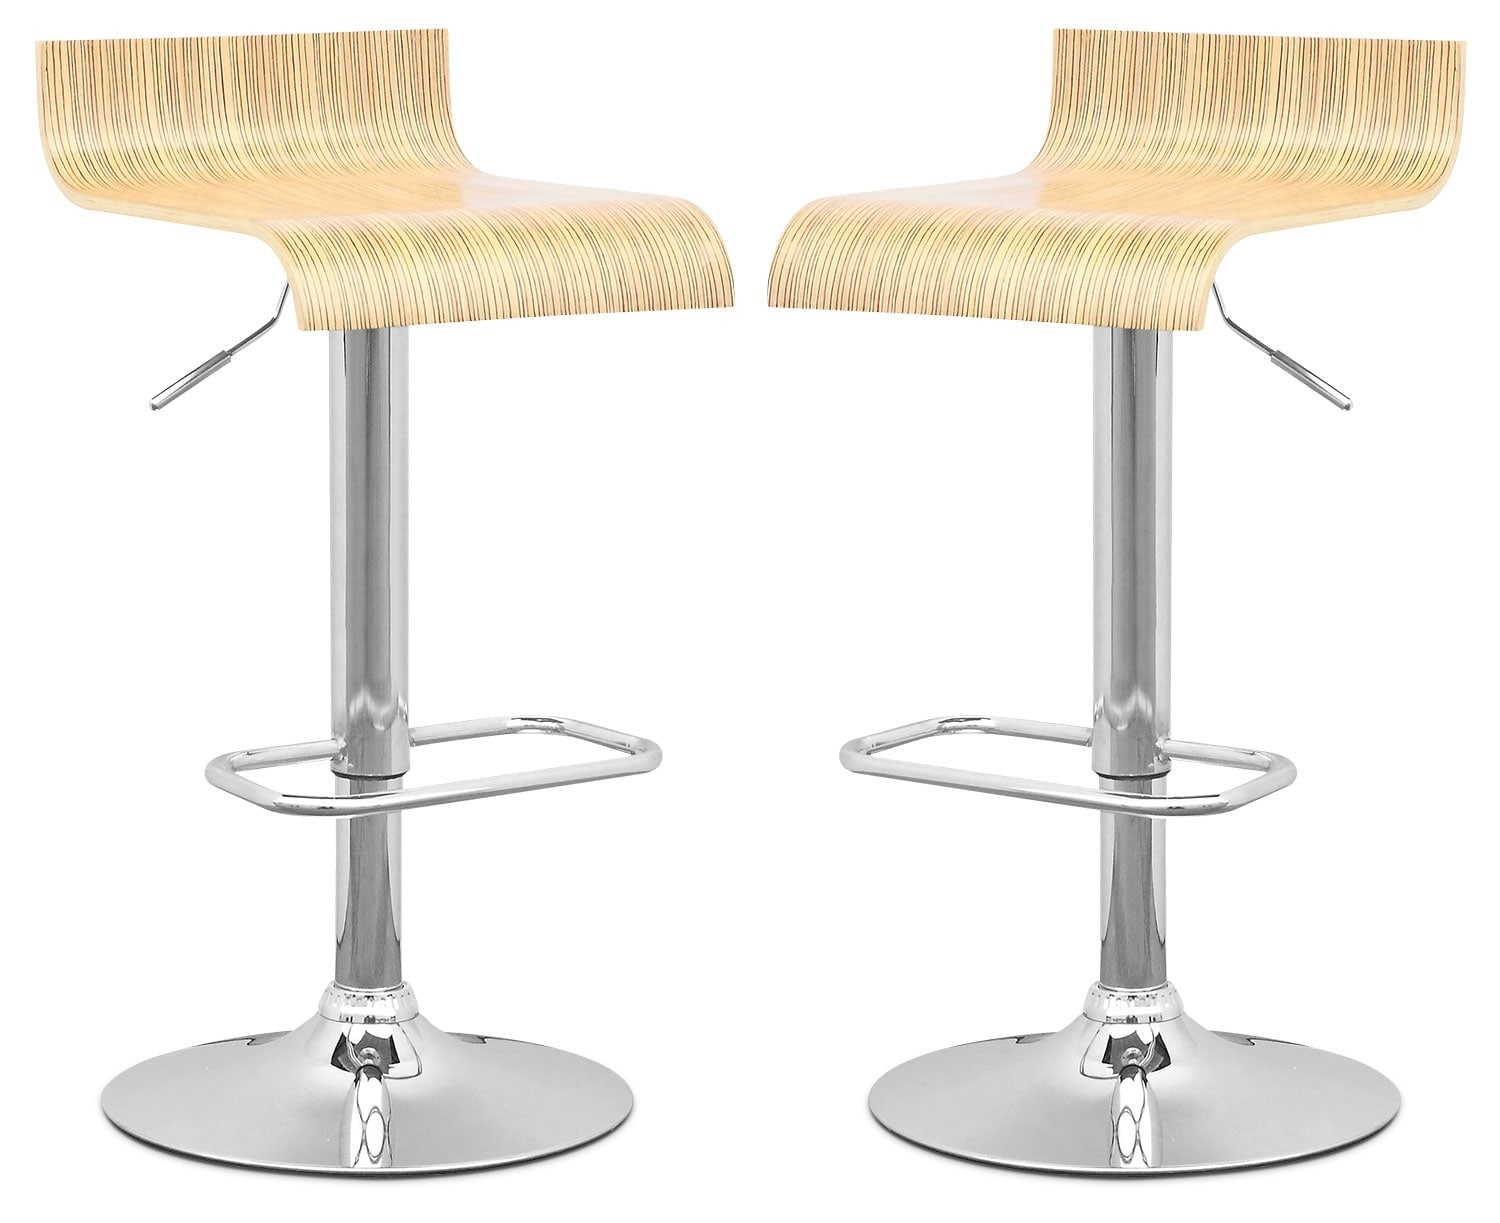 CorLiving Curved-Seat Adjustable Bar Stool, Set of 2